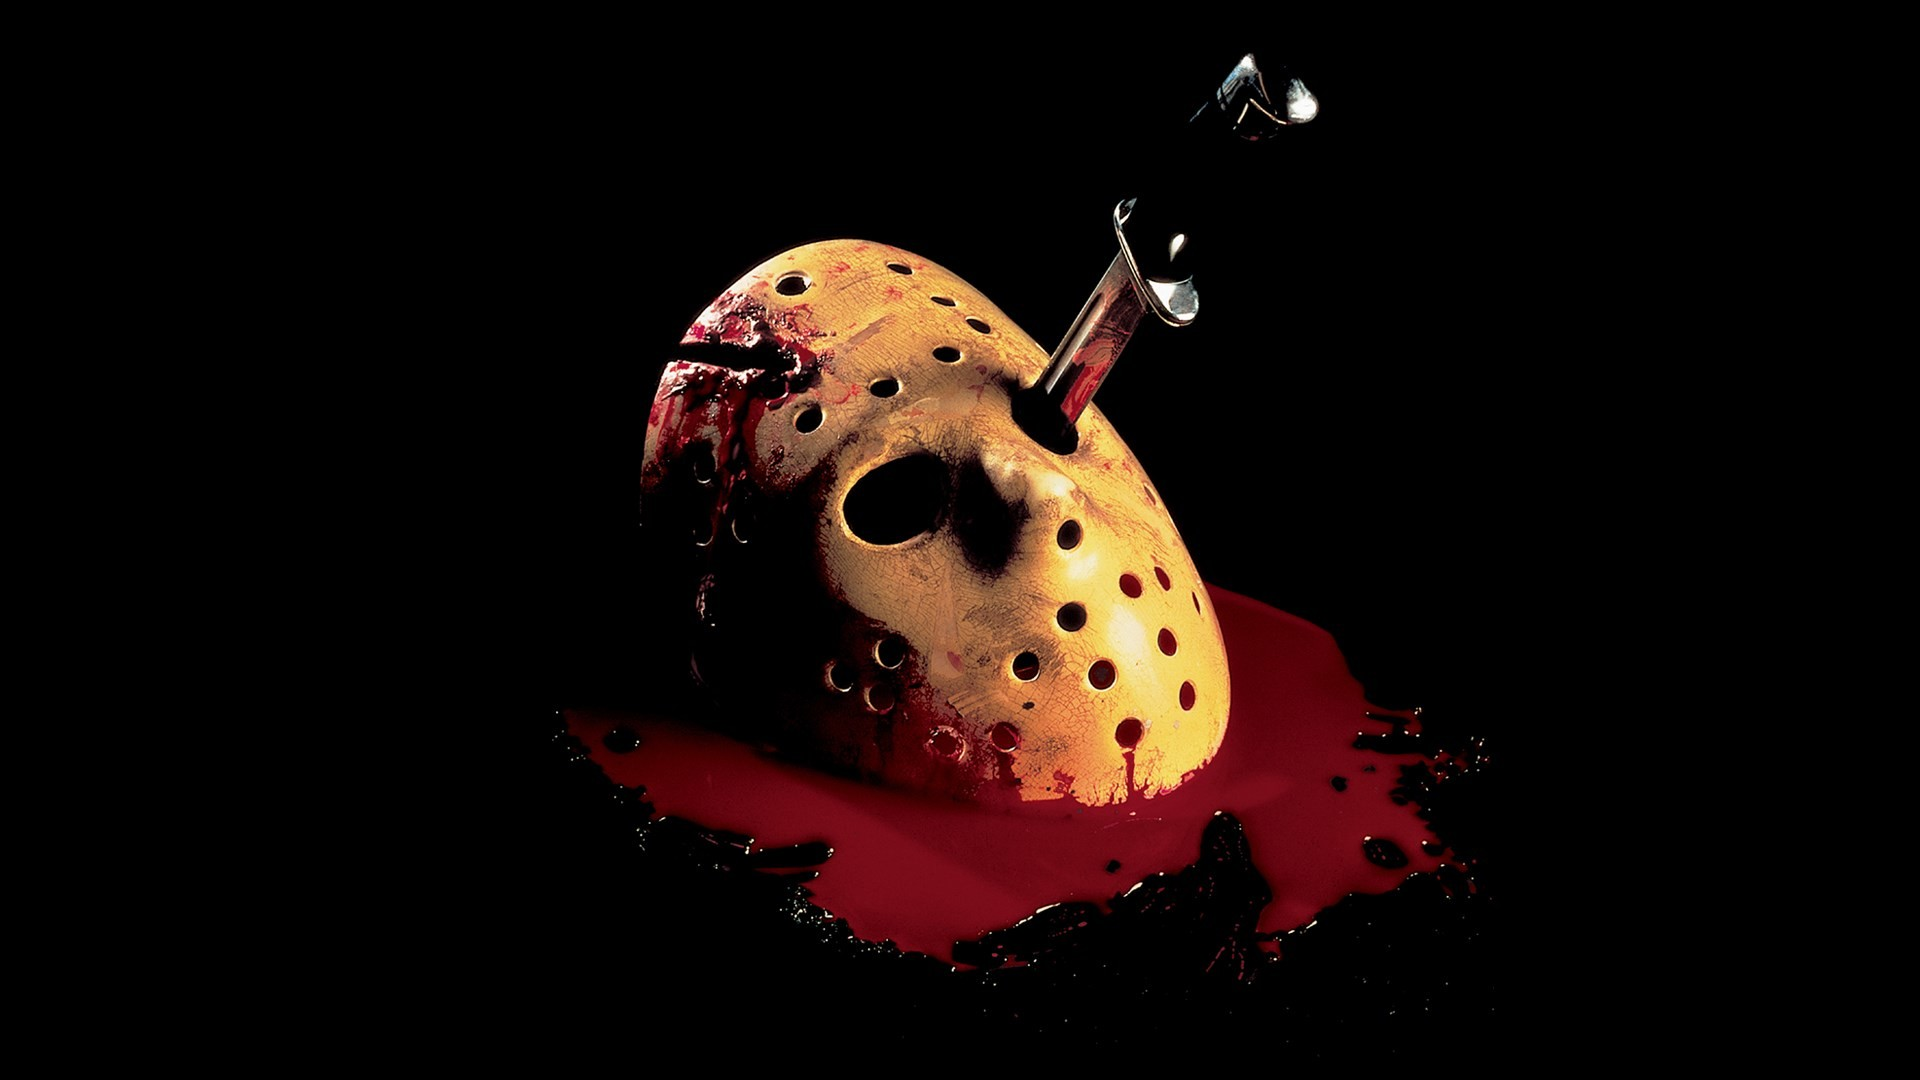 free desktop wallpaper downloads friday the 13th the final chapter